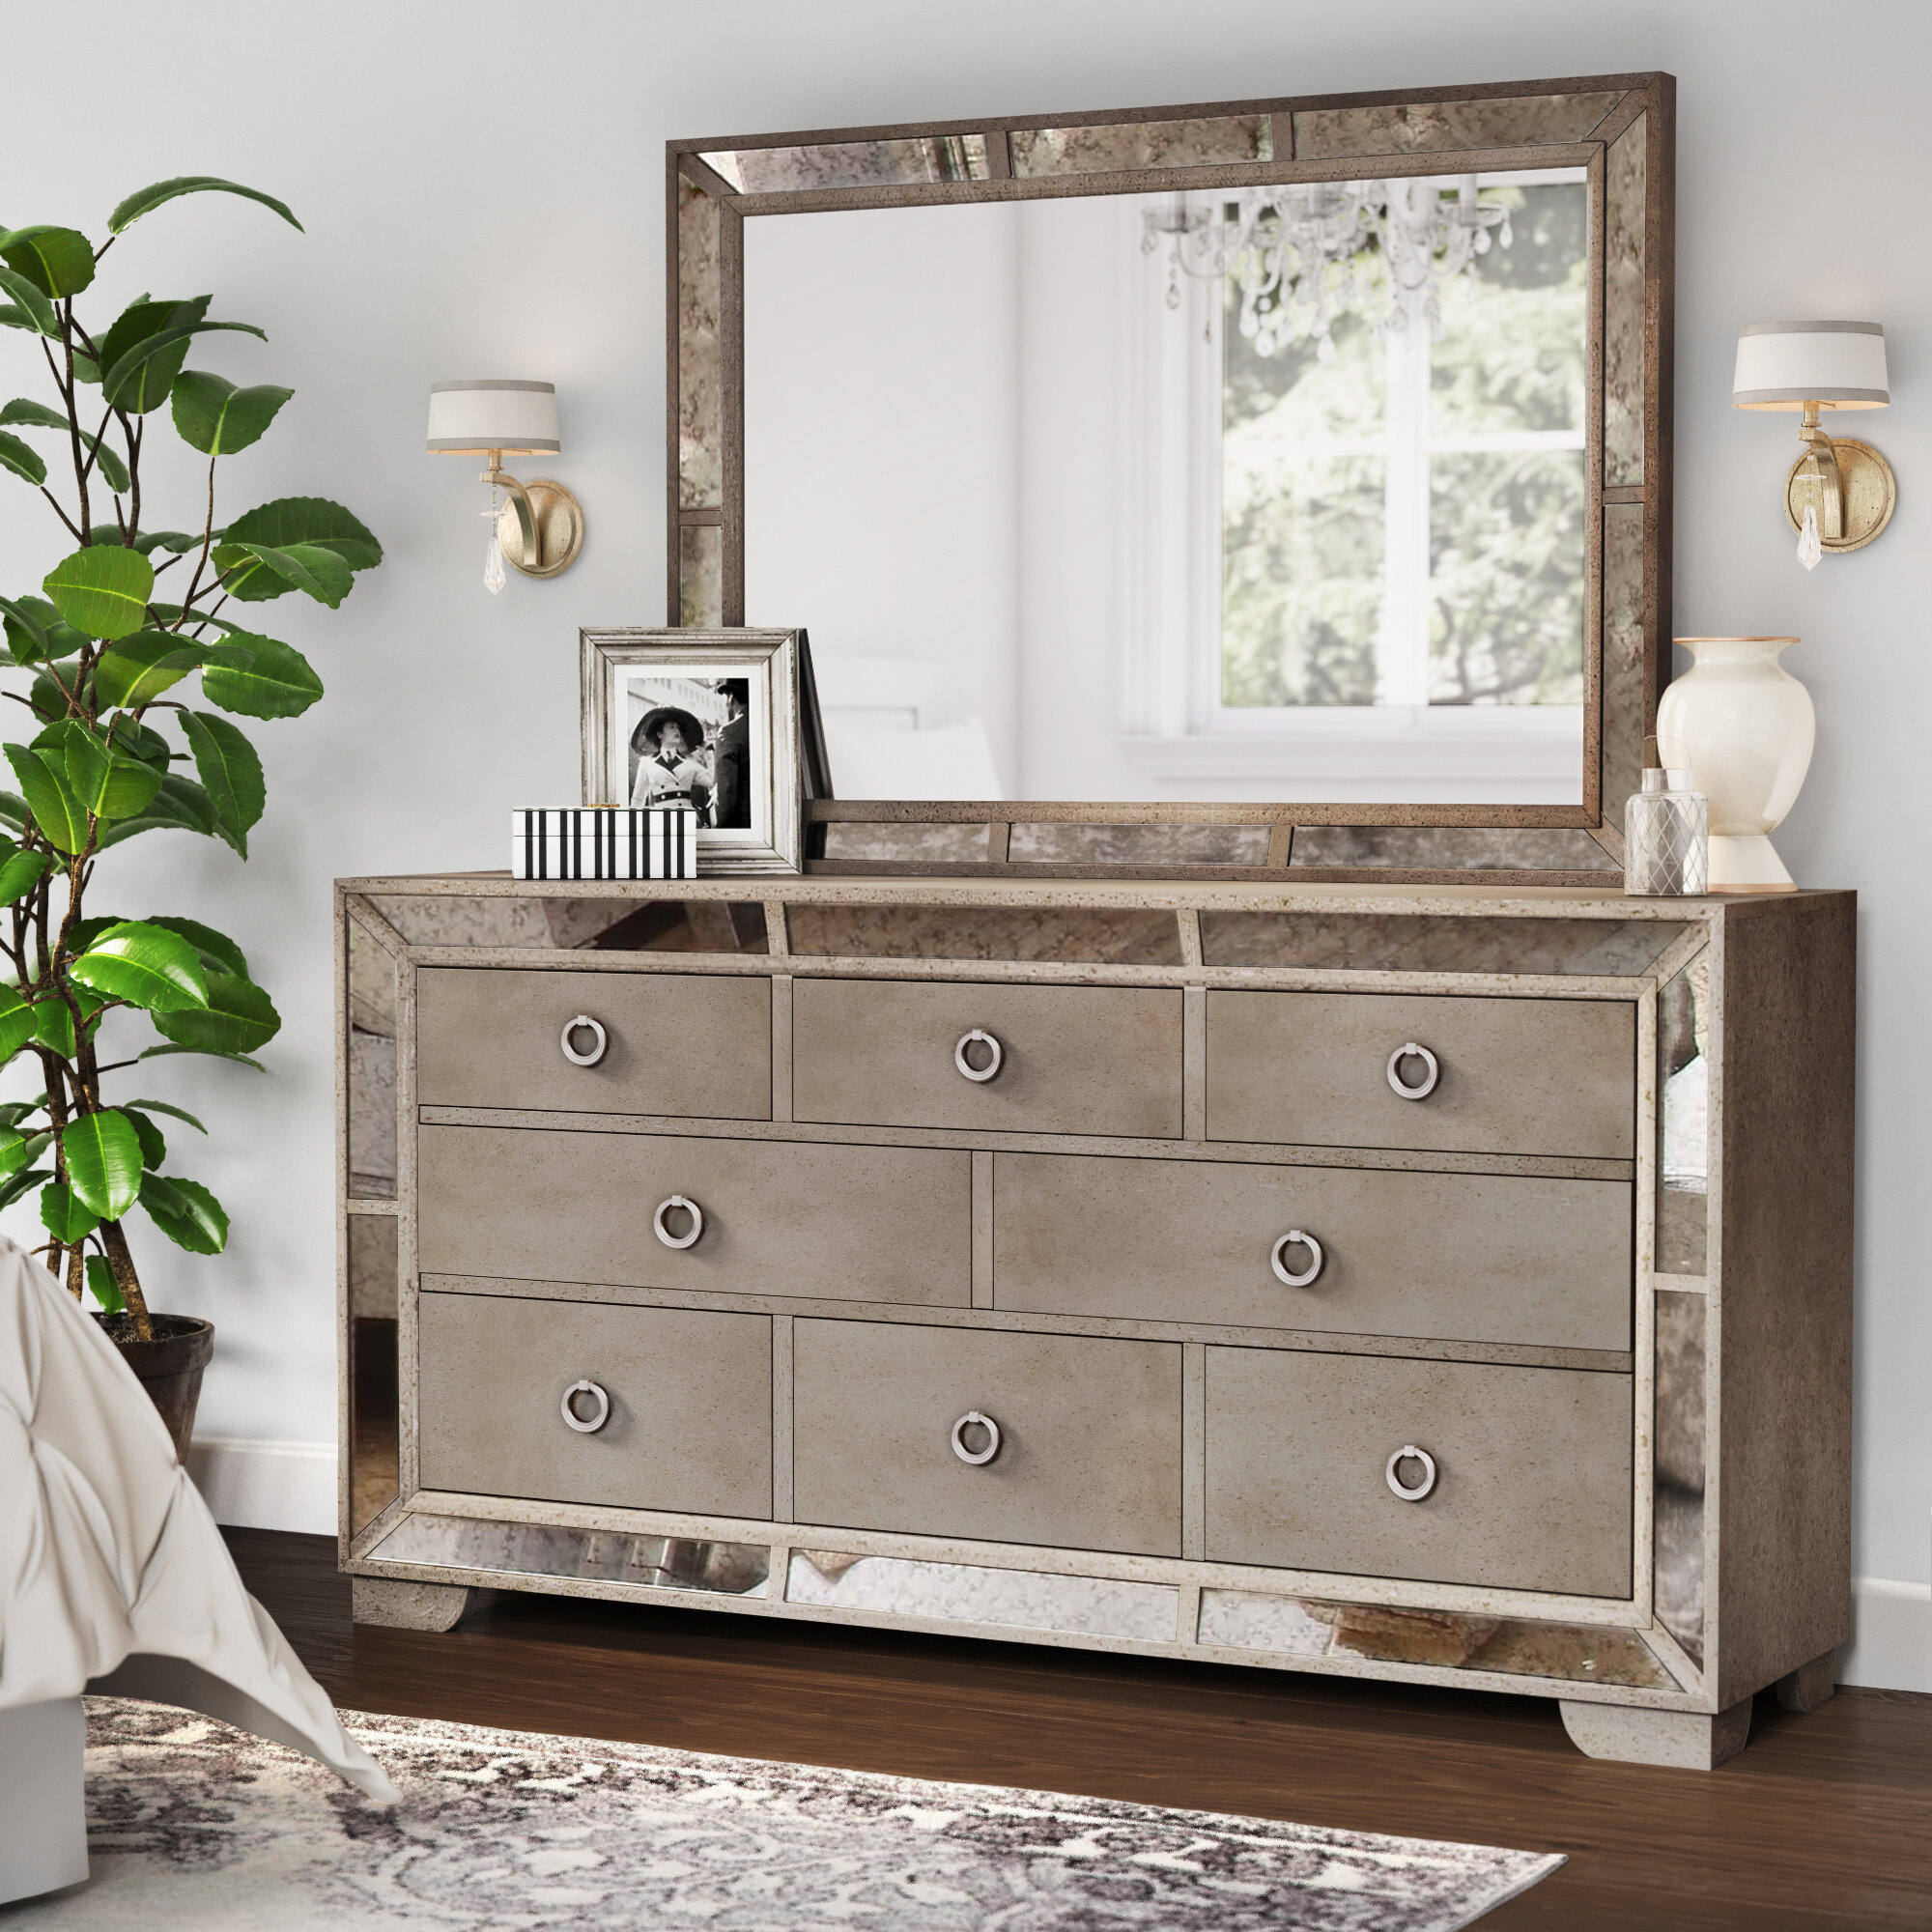 wide drawers ikea smooth design hemnes mirror black wooden case white modern wonderful spacious with handle pretty painted round square drawer dresser